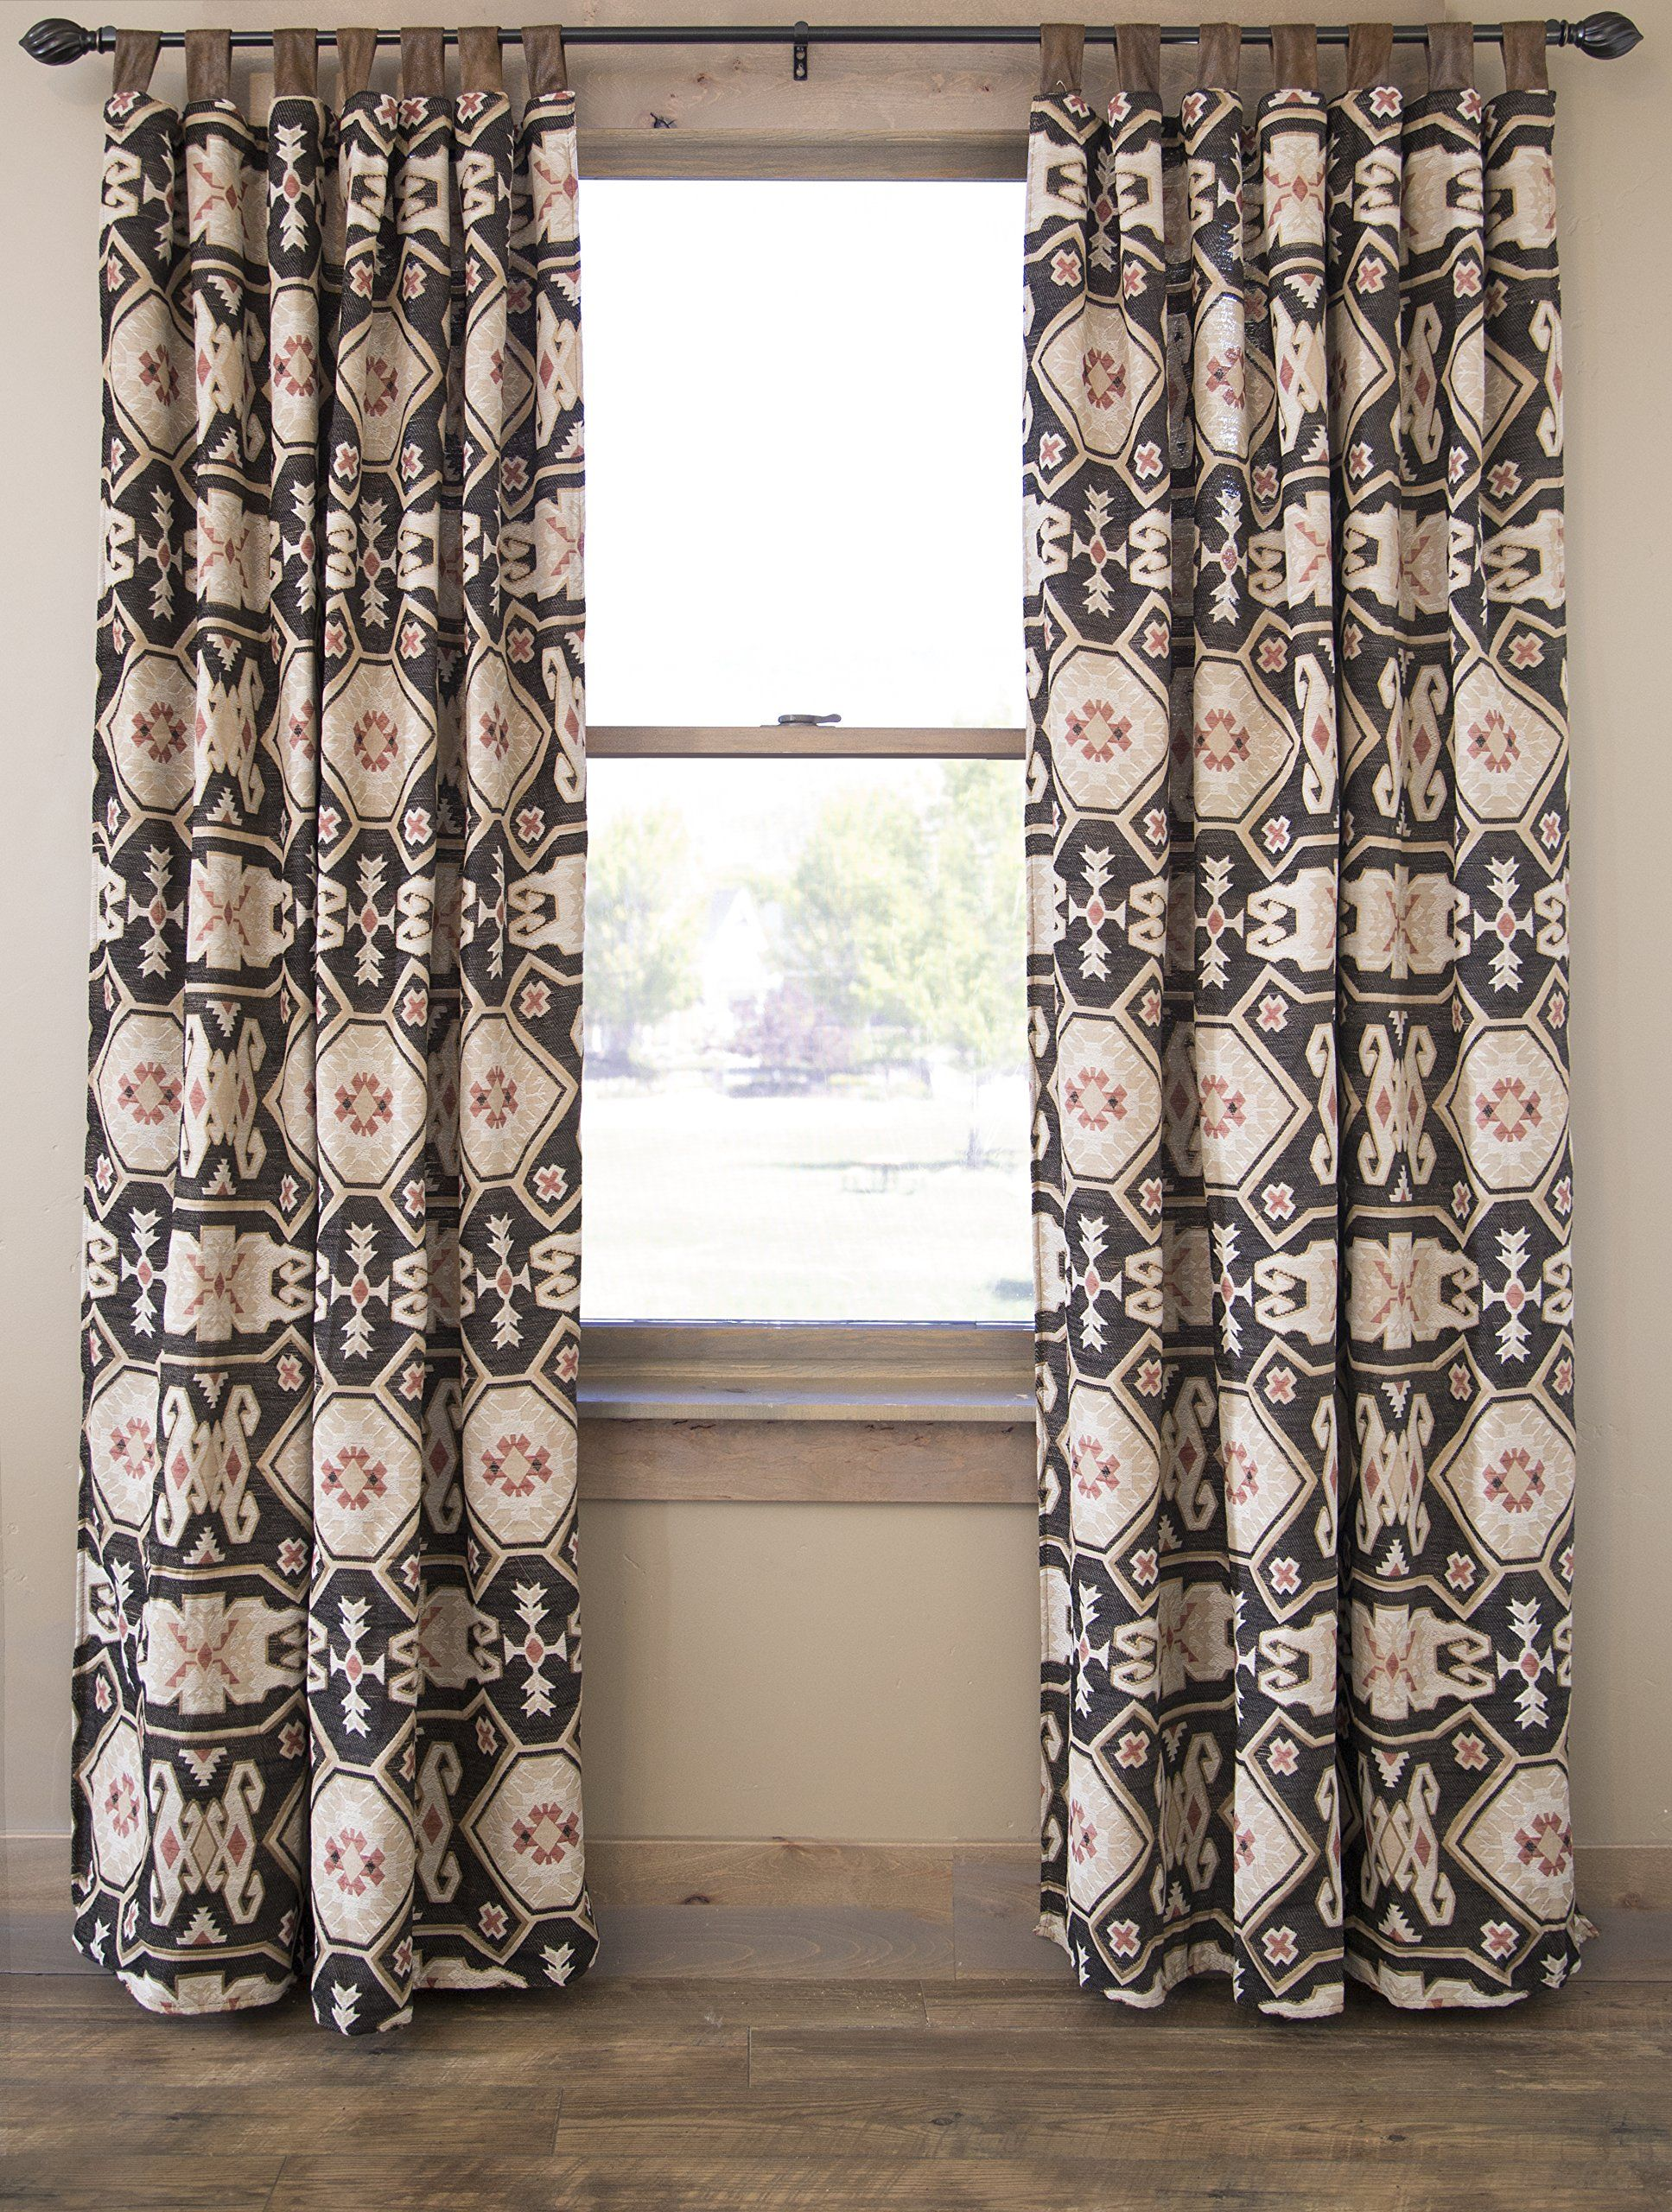 Tab Top Curtains Amazon Southwestern Curtain Panels Set Of 2 54 X 84 Tab Top Drapes By